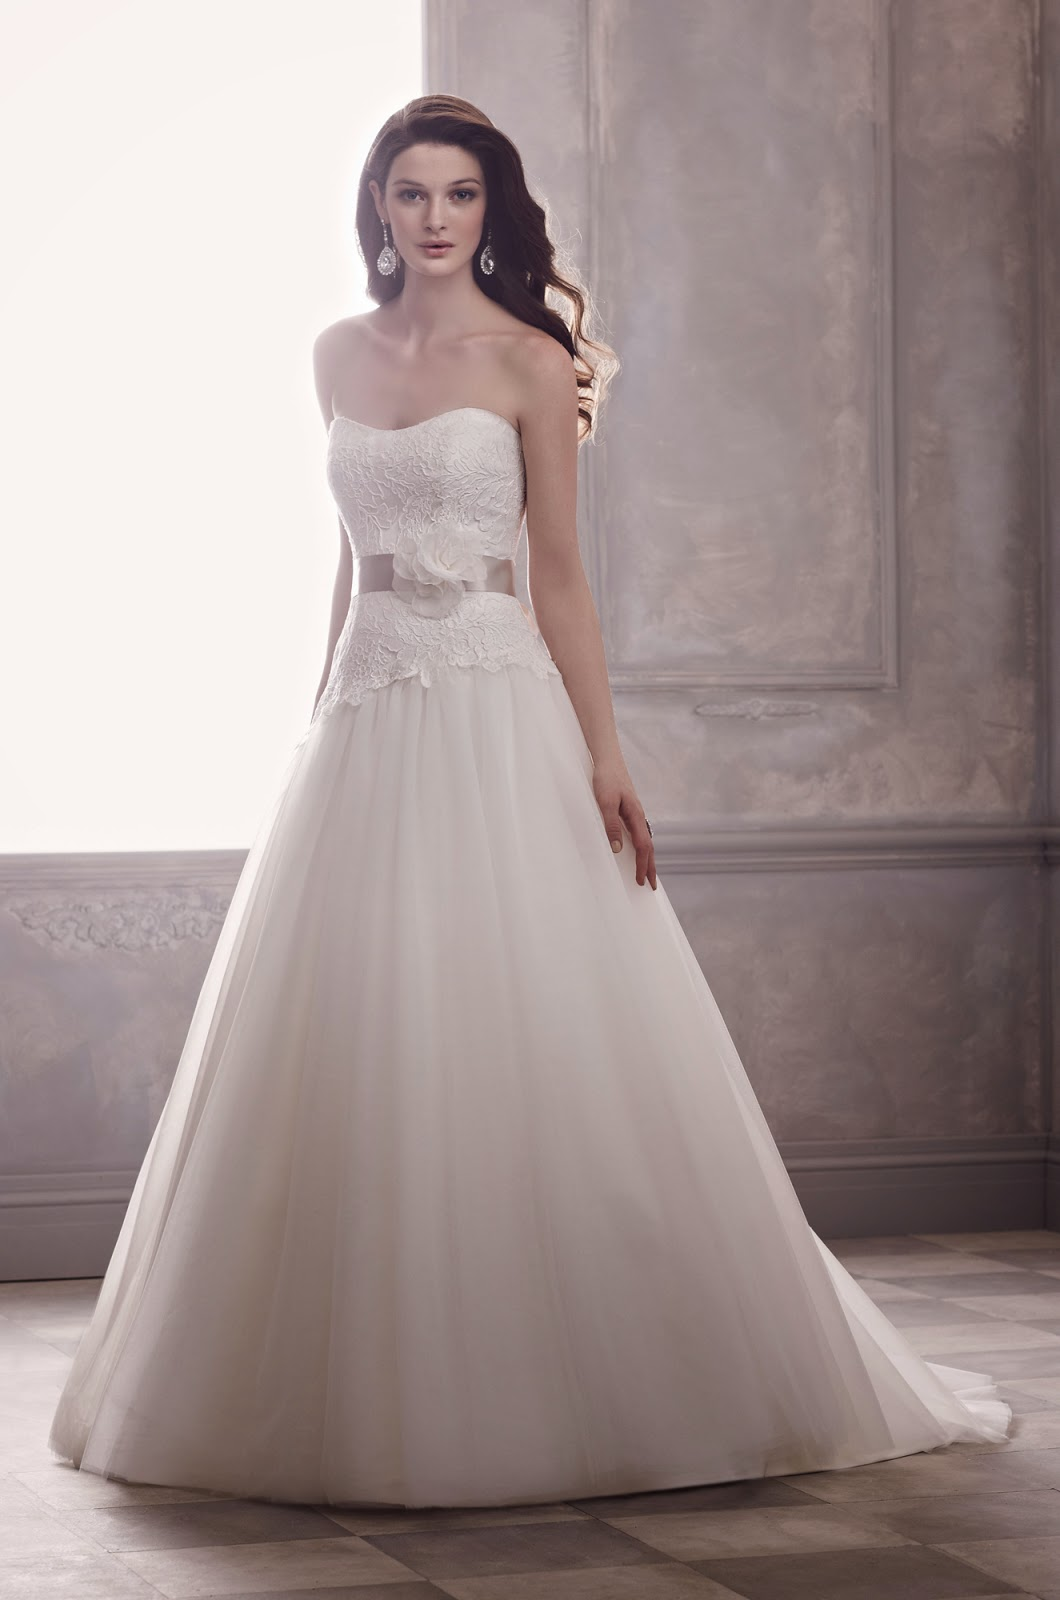 Wedding Concept Ideas Tips On Choosing The Wedding Dress